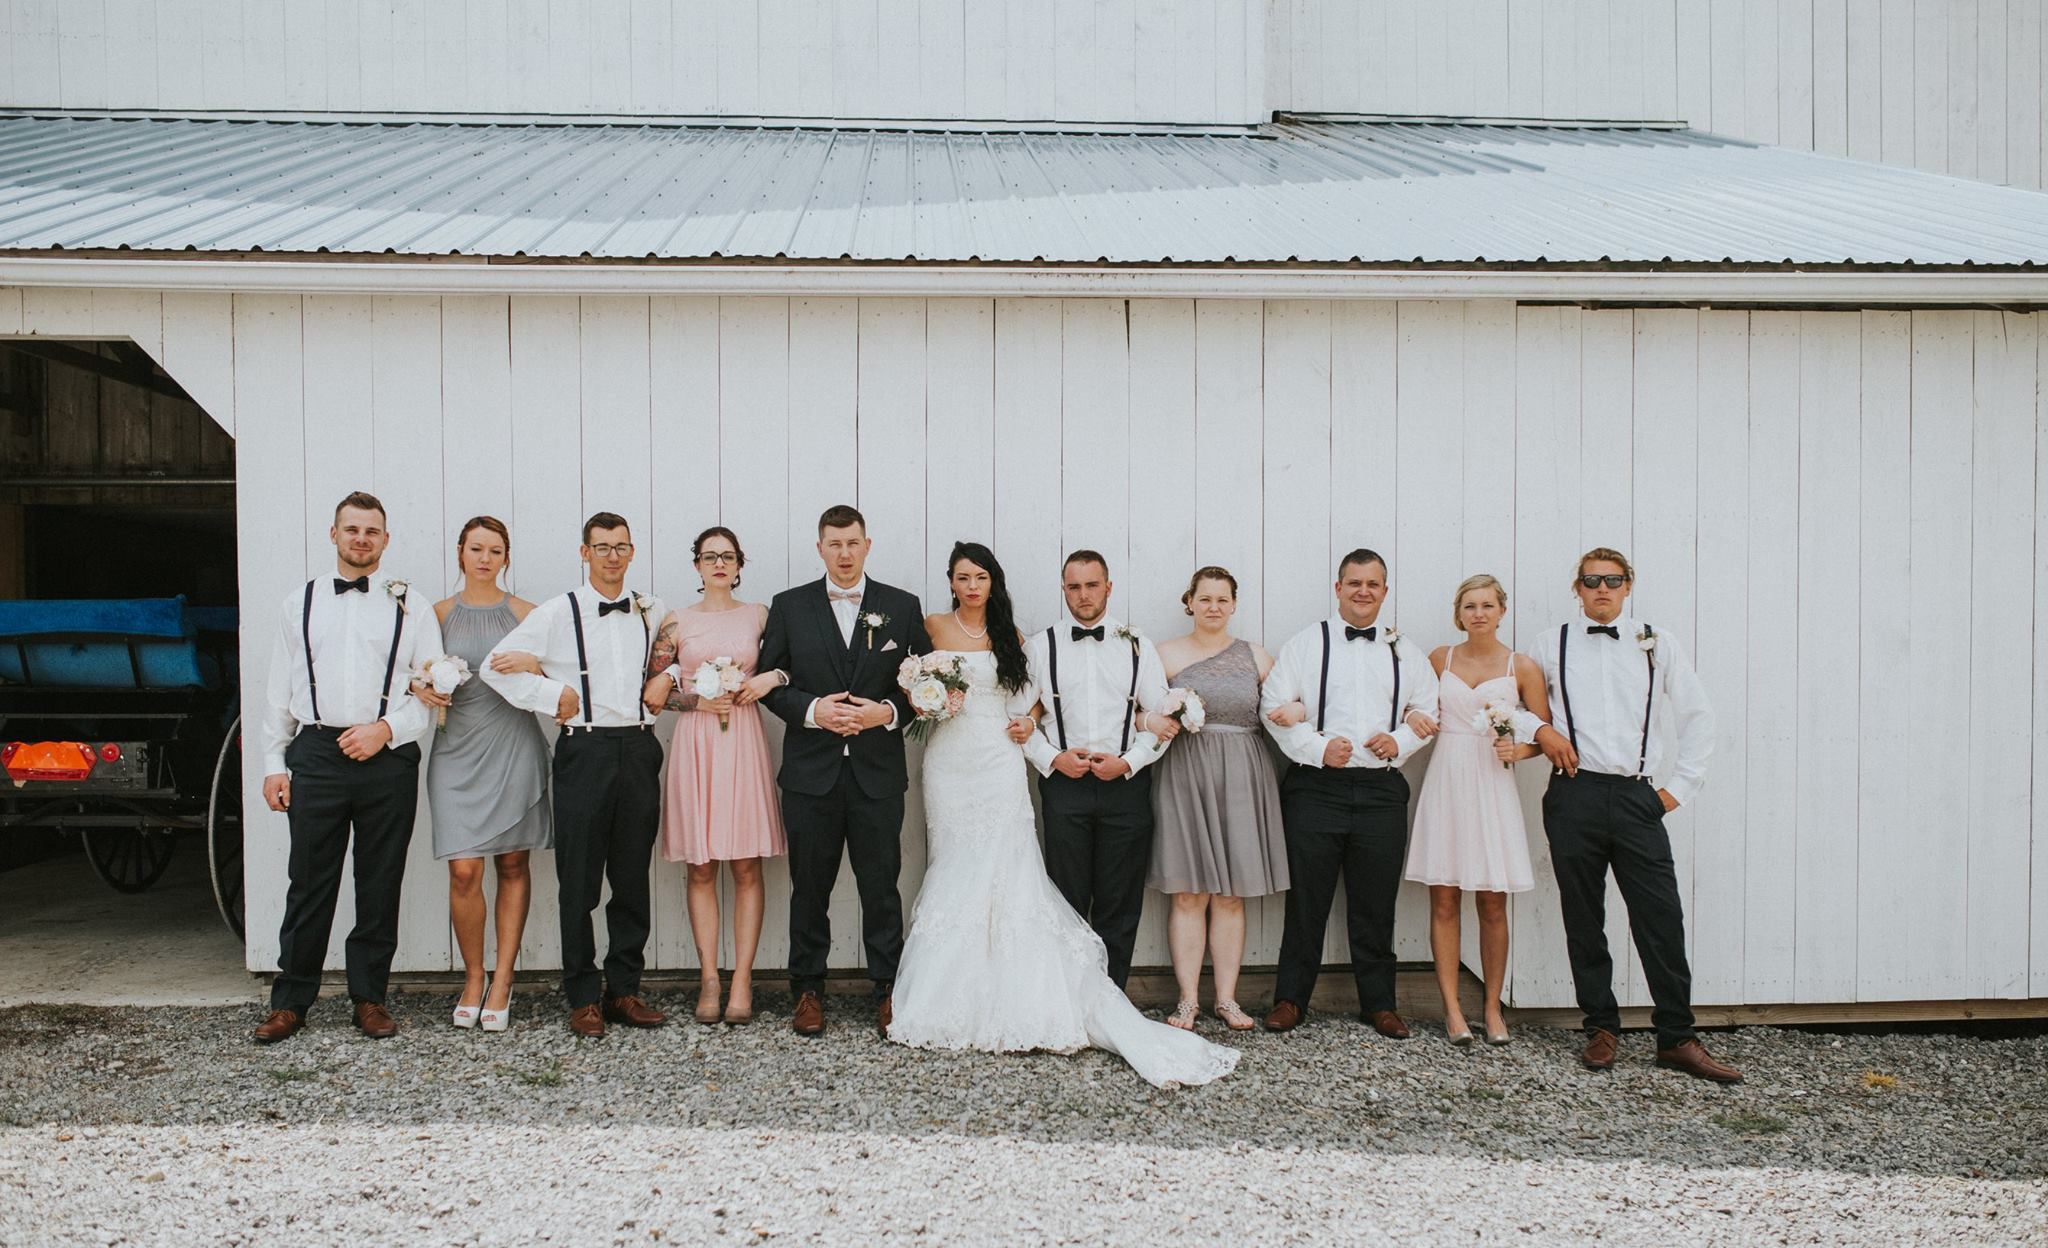 In Front of the Wedding Barn